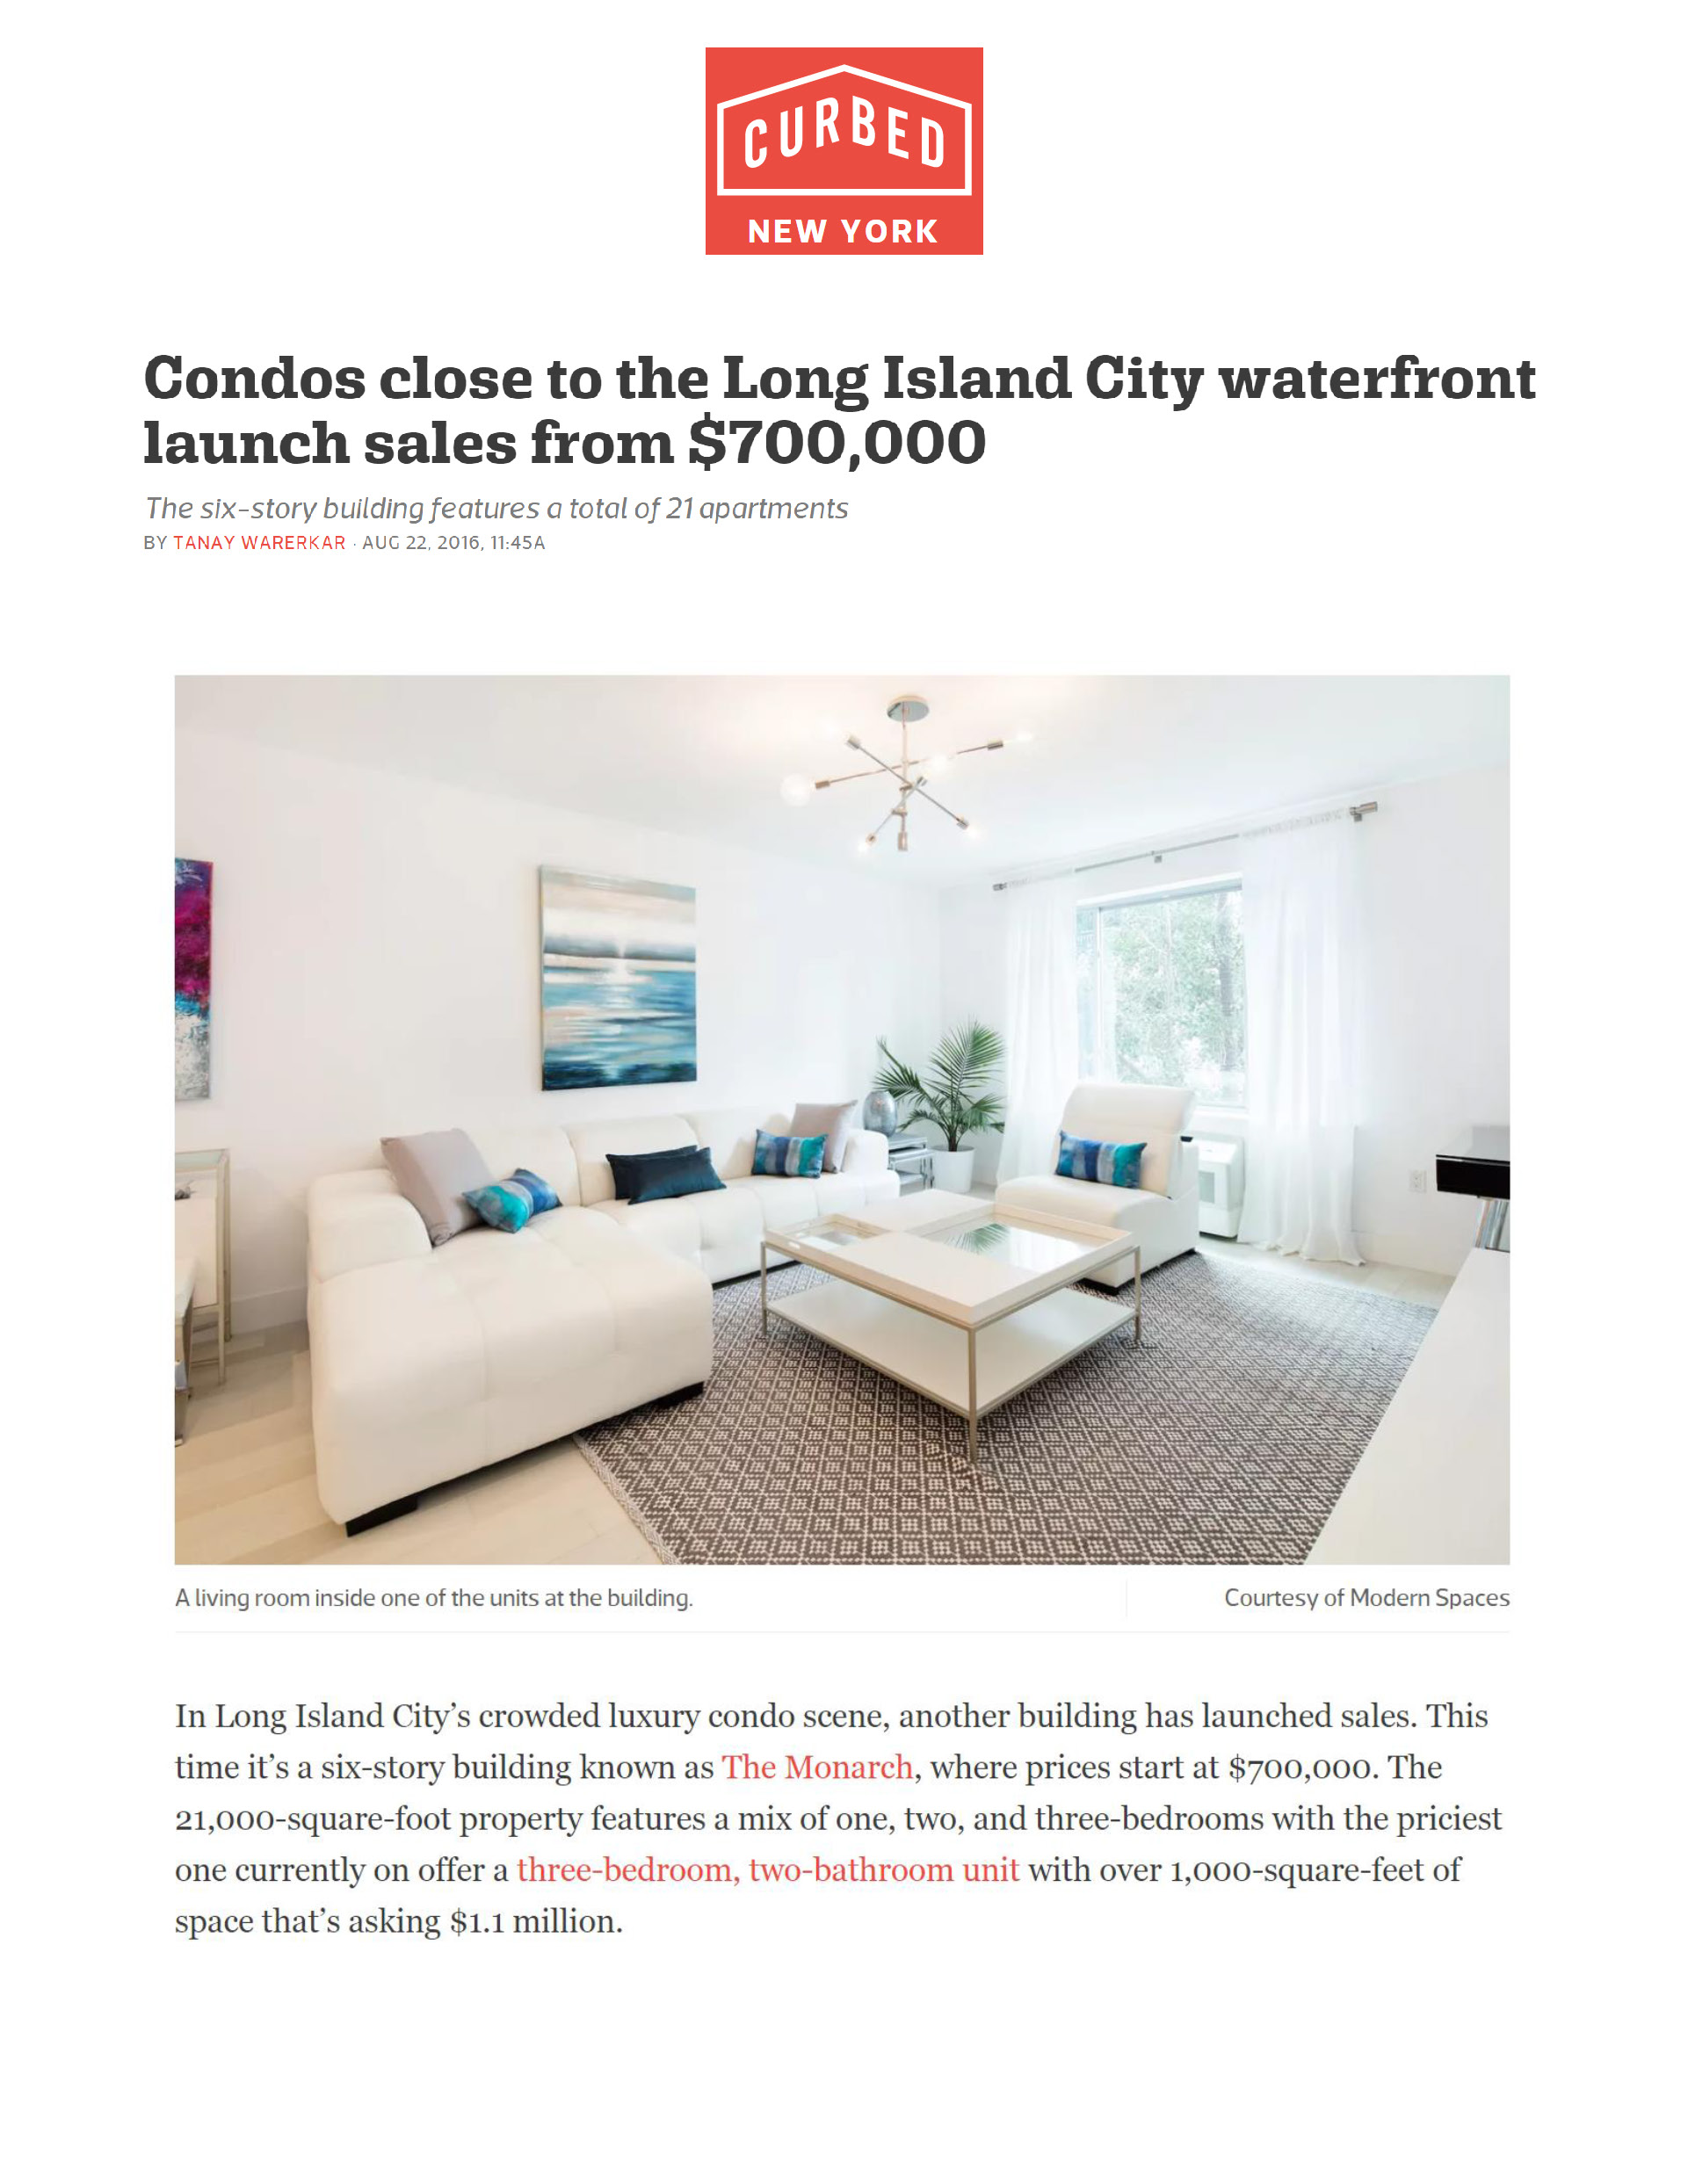 Curbed New York - Condos close to the Long Island City waterfront launch..._Page_1